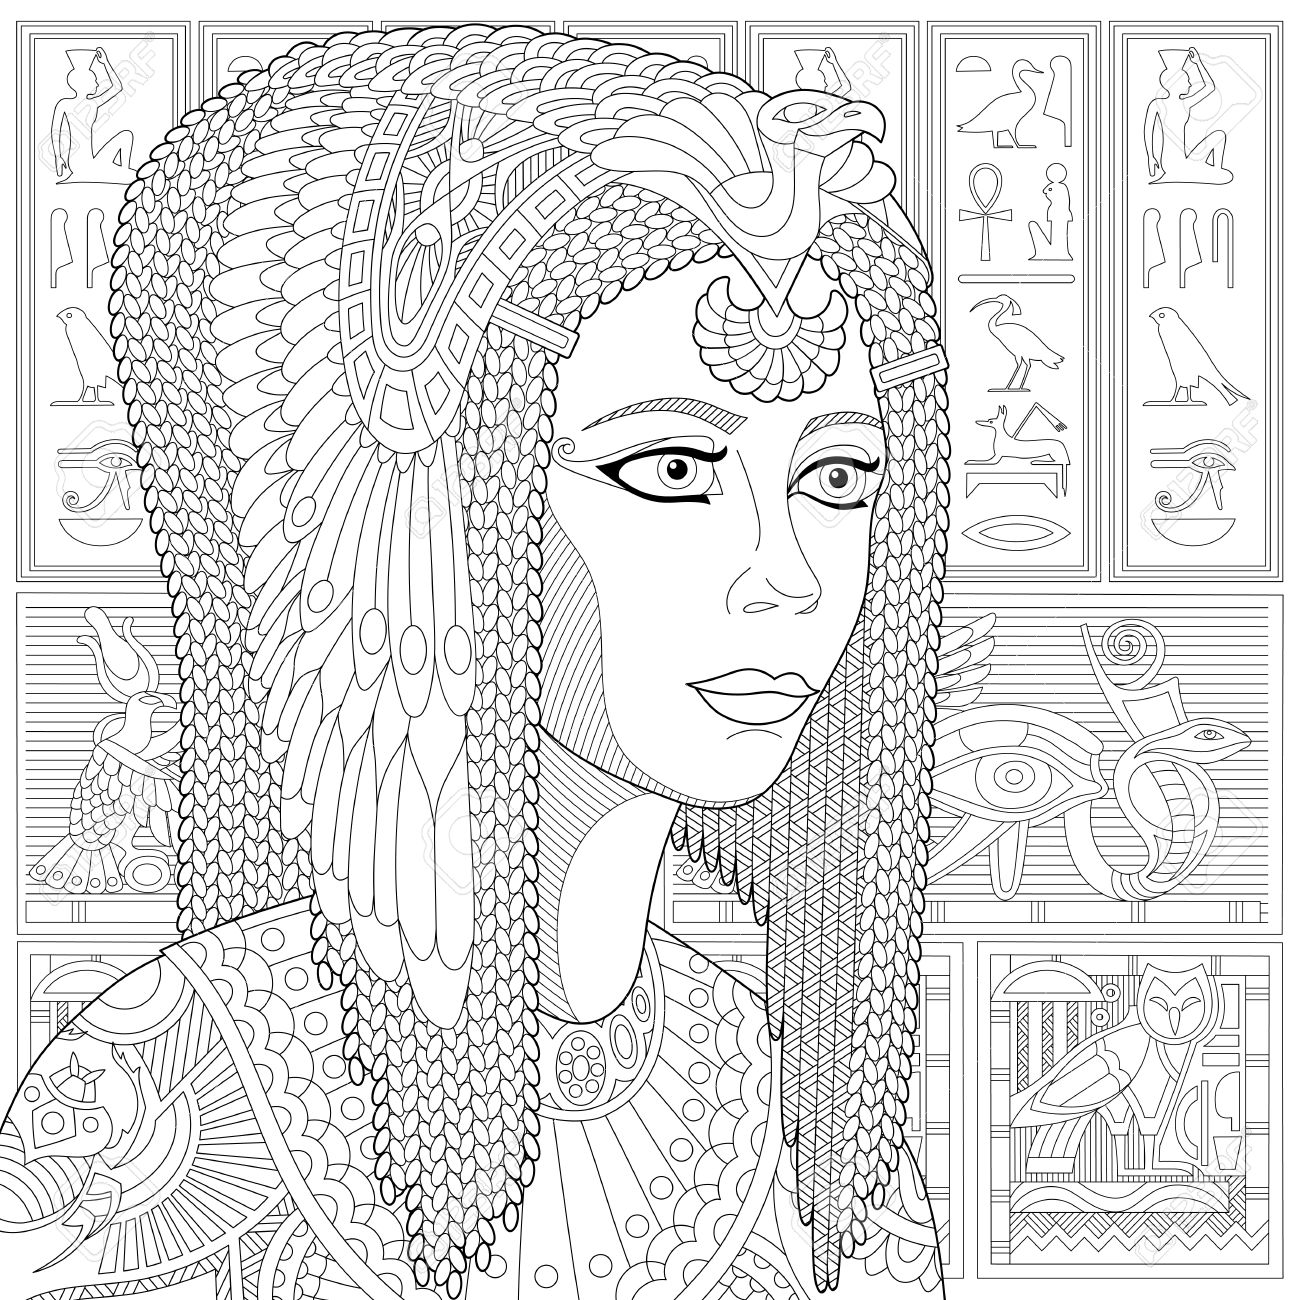 Stylized ancient queen Cleopatra (or Nefertiti) and egyptian symbols (hieroglyphs) on the background. Freehand sketch for adult anti stress coloring book page with doodle elements. - 61801616